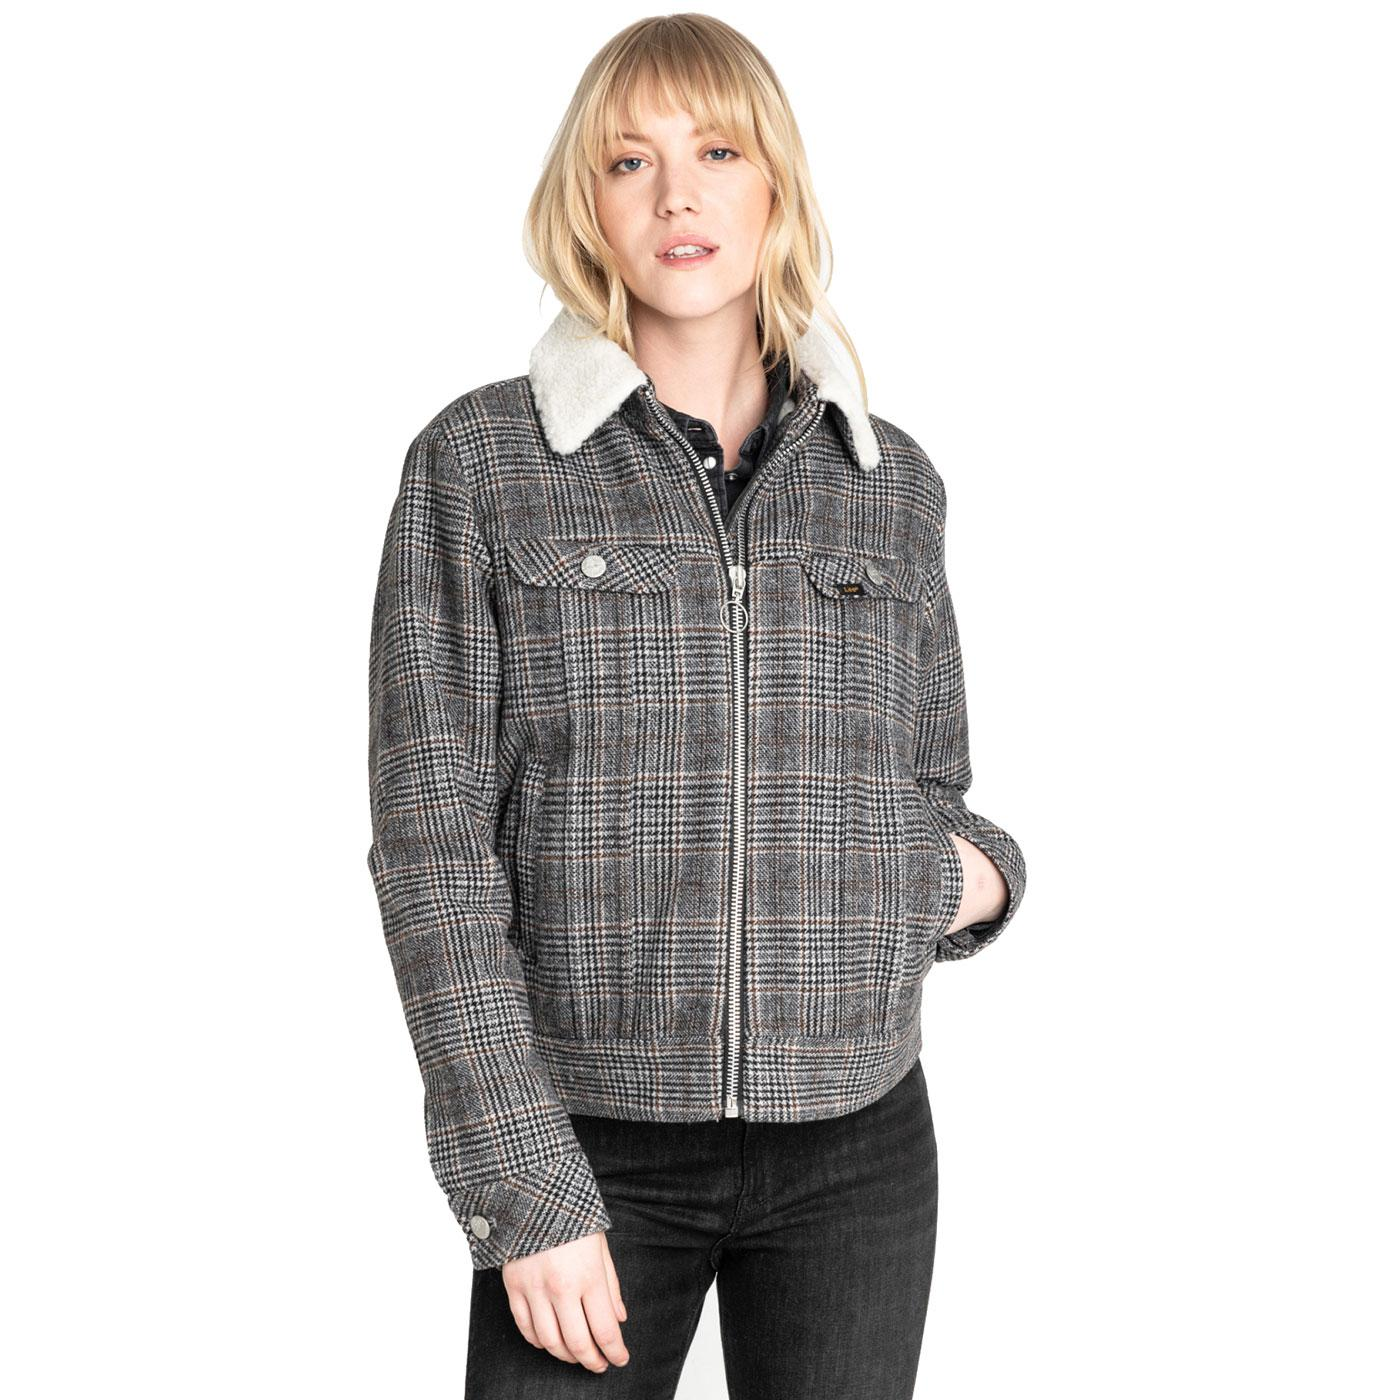 LEE JEANS Women's Retro POW Check Sherpa Jacket